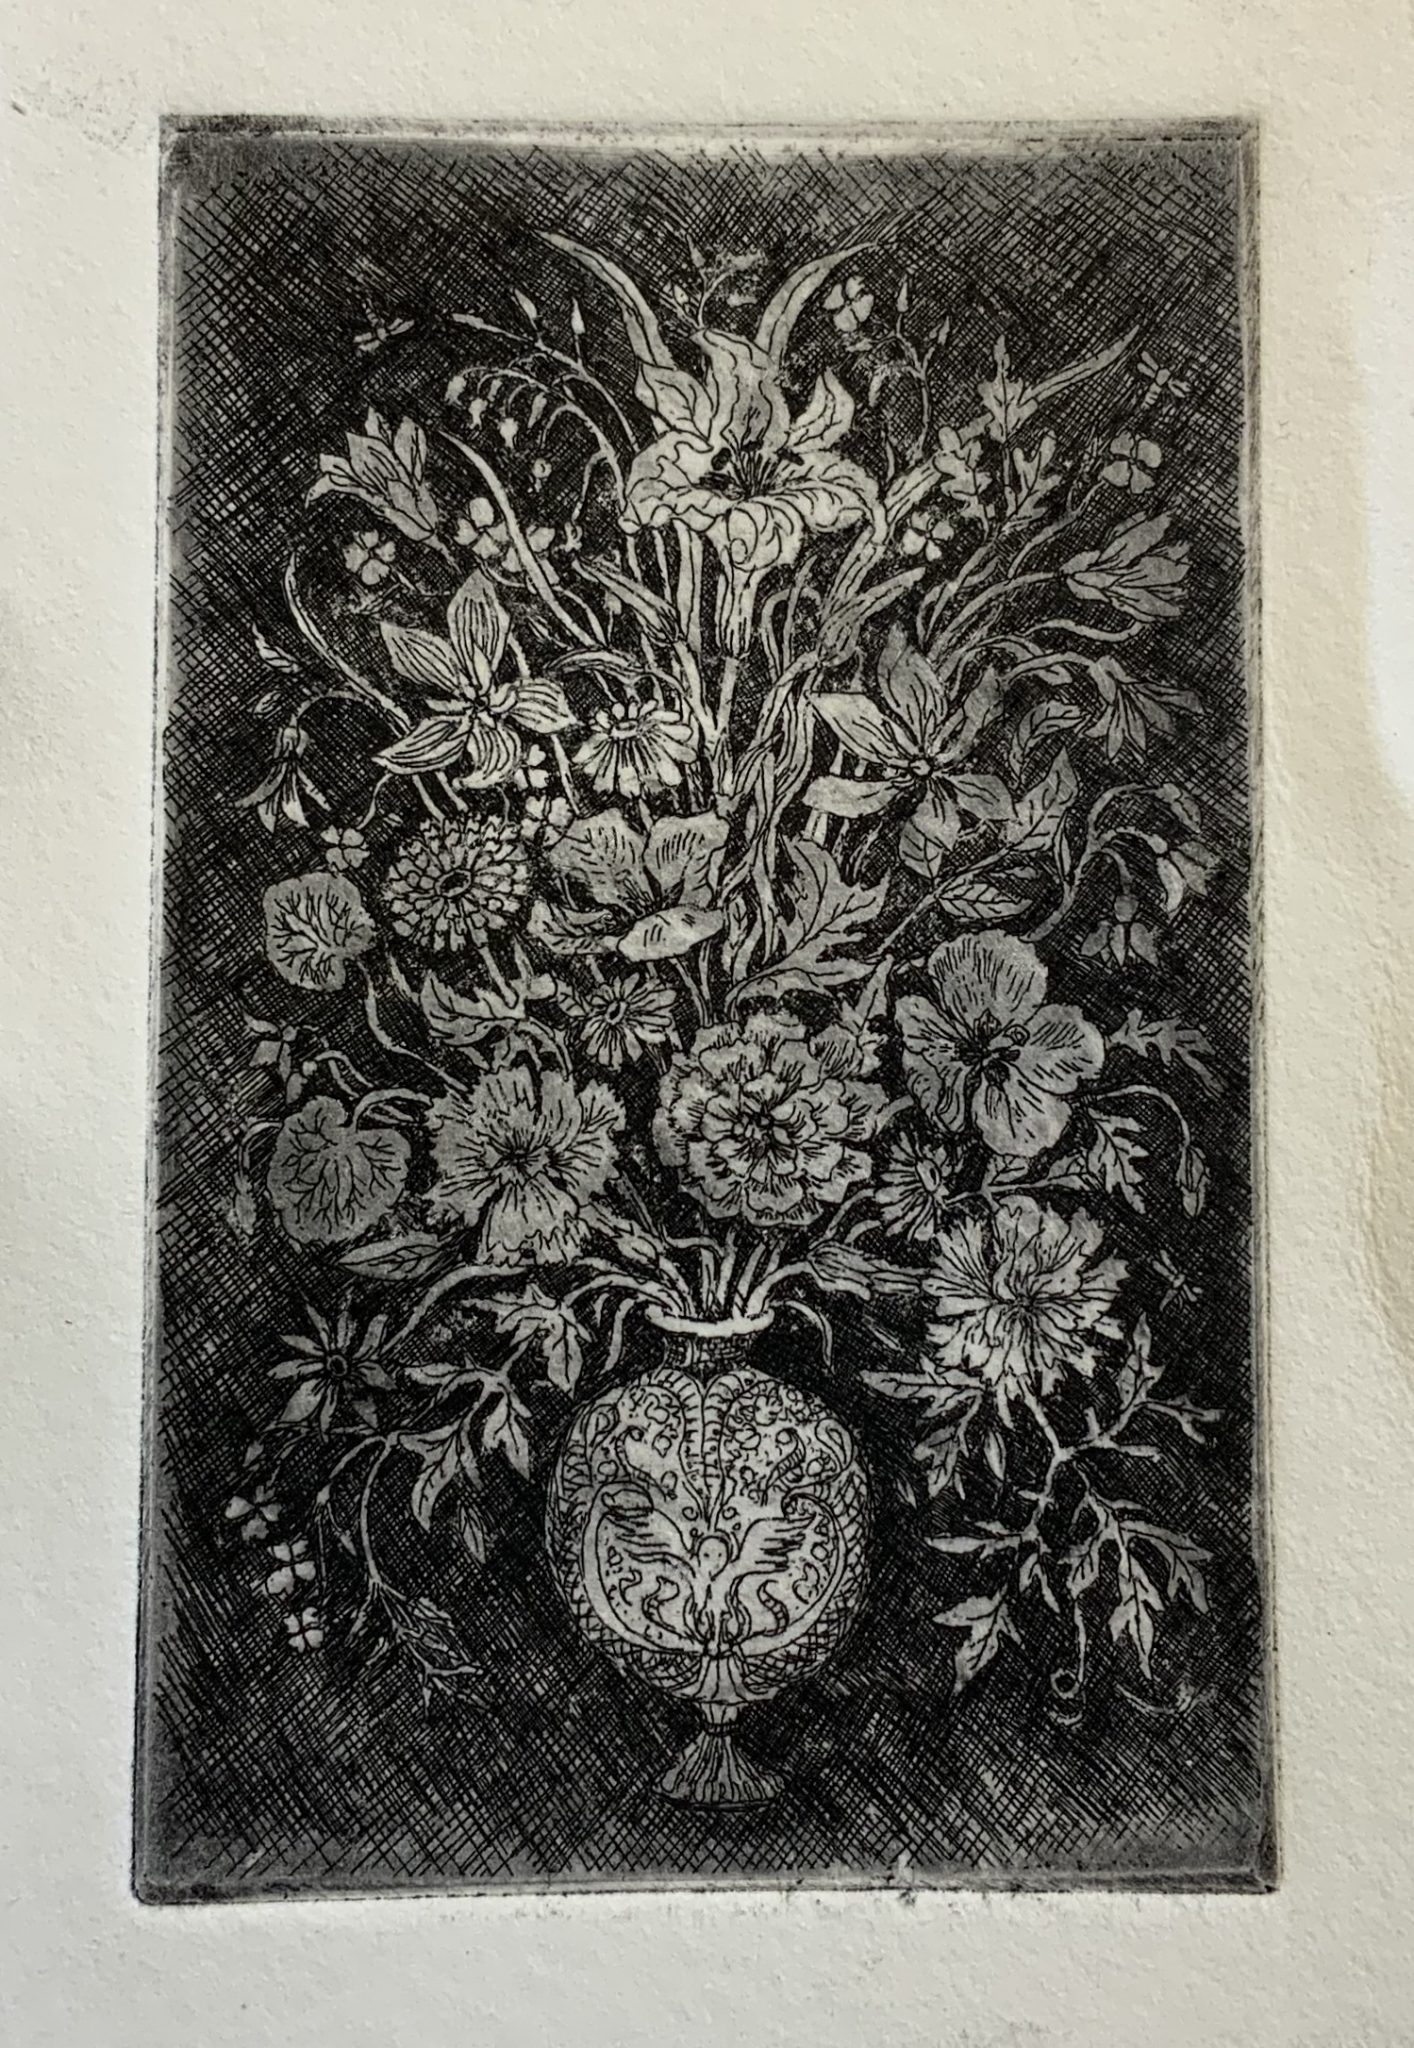 Print from Etching printing press. Etching